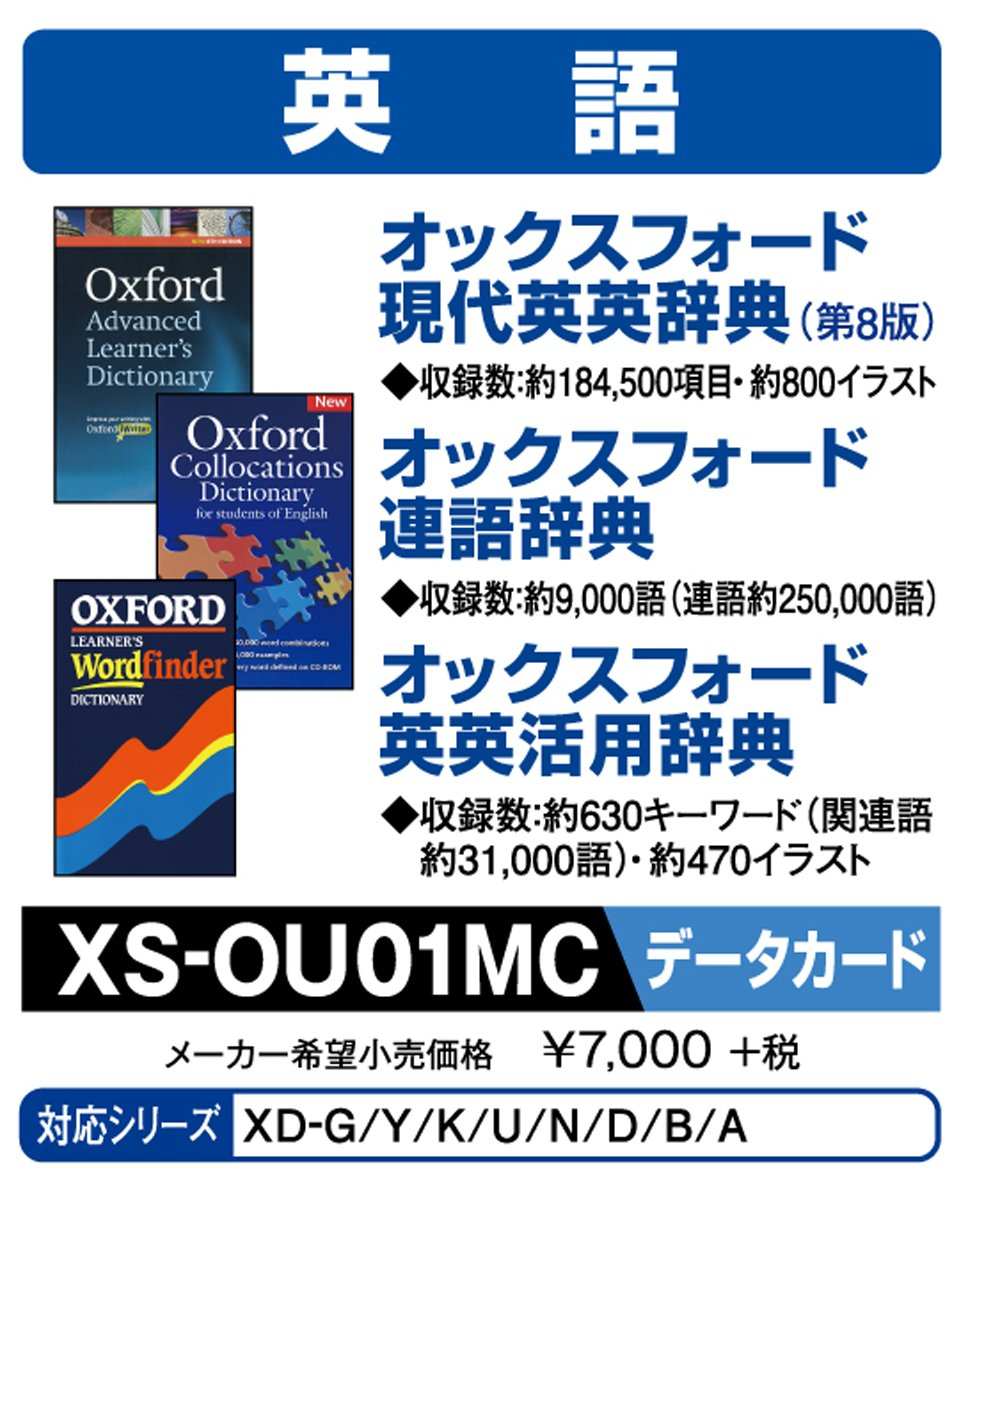 Casio electronic dictionary add content microSD card version of Oxford Advanced Learner's Dictionary of Current English Oxford collocations dictionary Oxford English-English dictionary leverage XS-OU01MC